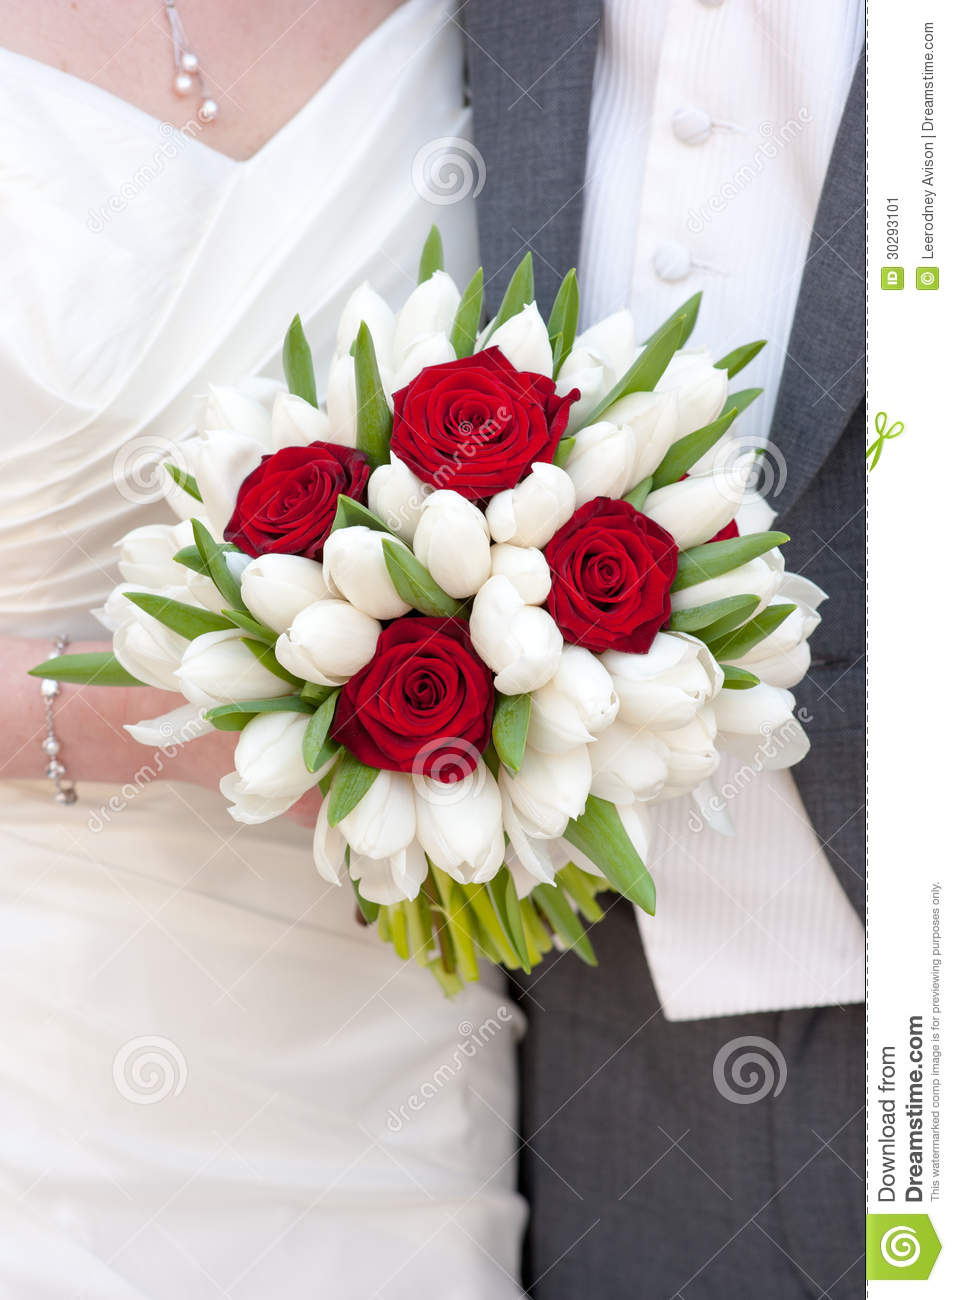 Red rose and white tulip wedding bouquet stock image for Wedding bouquet tulips and roses